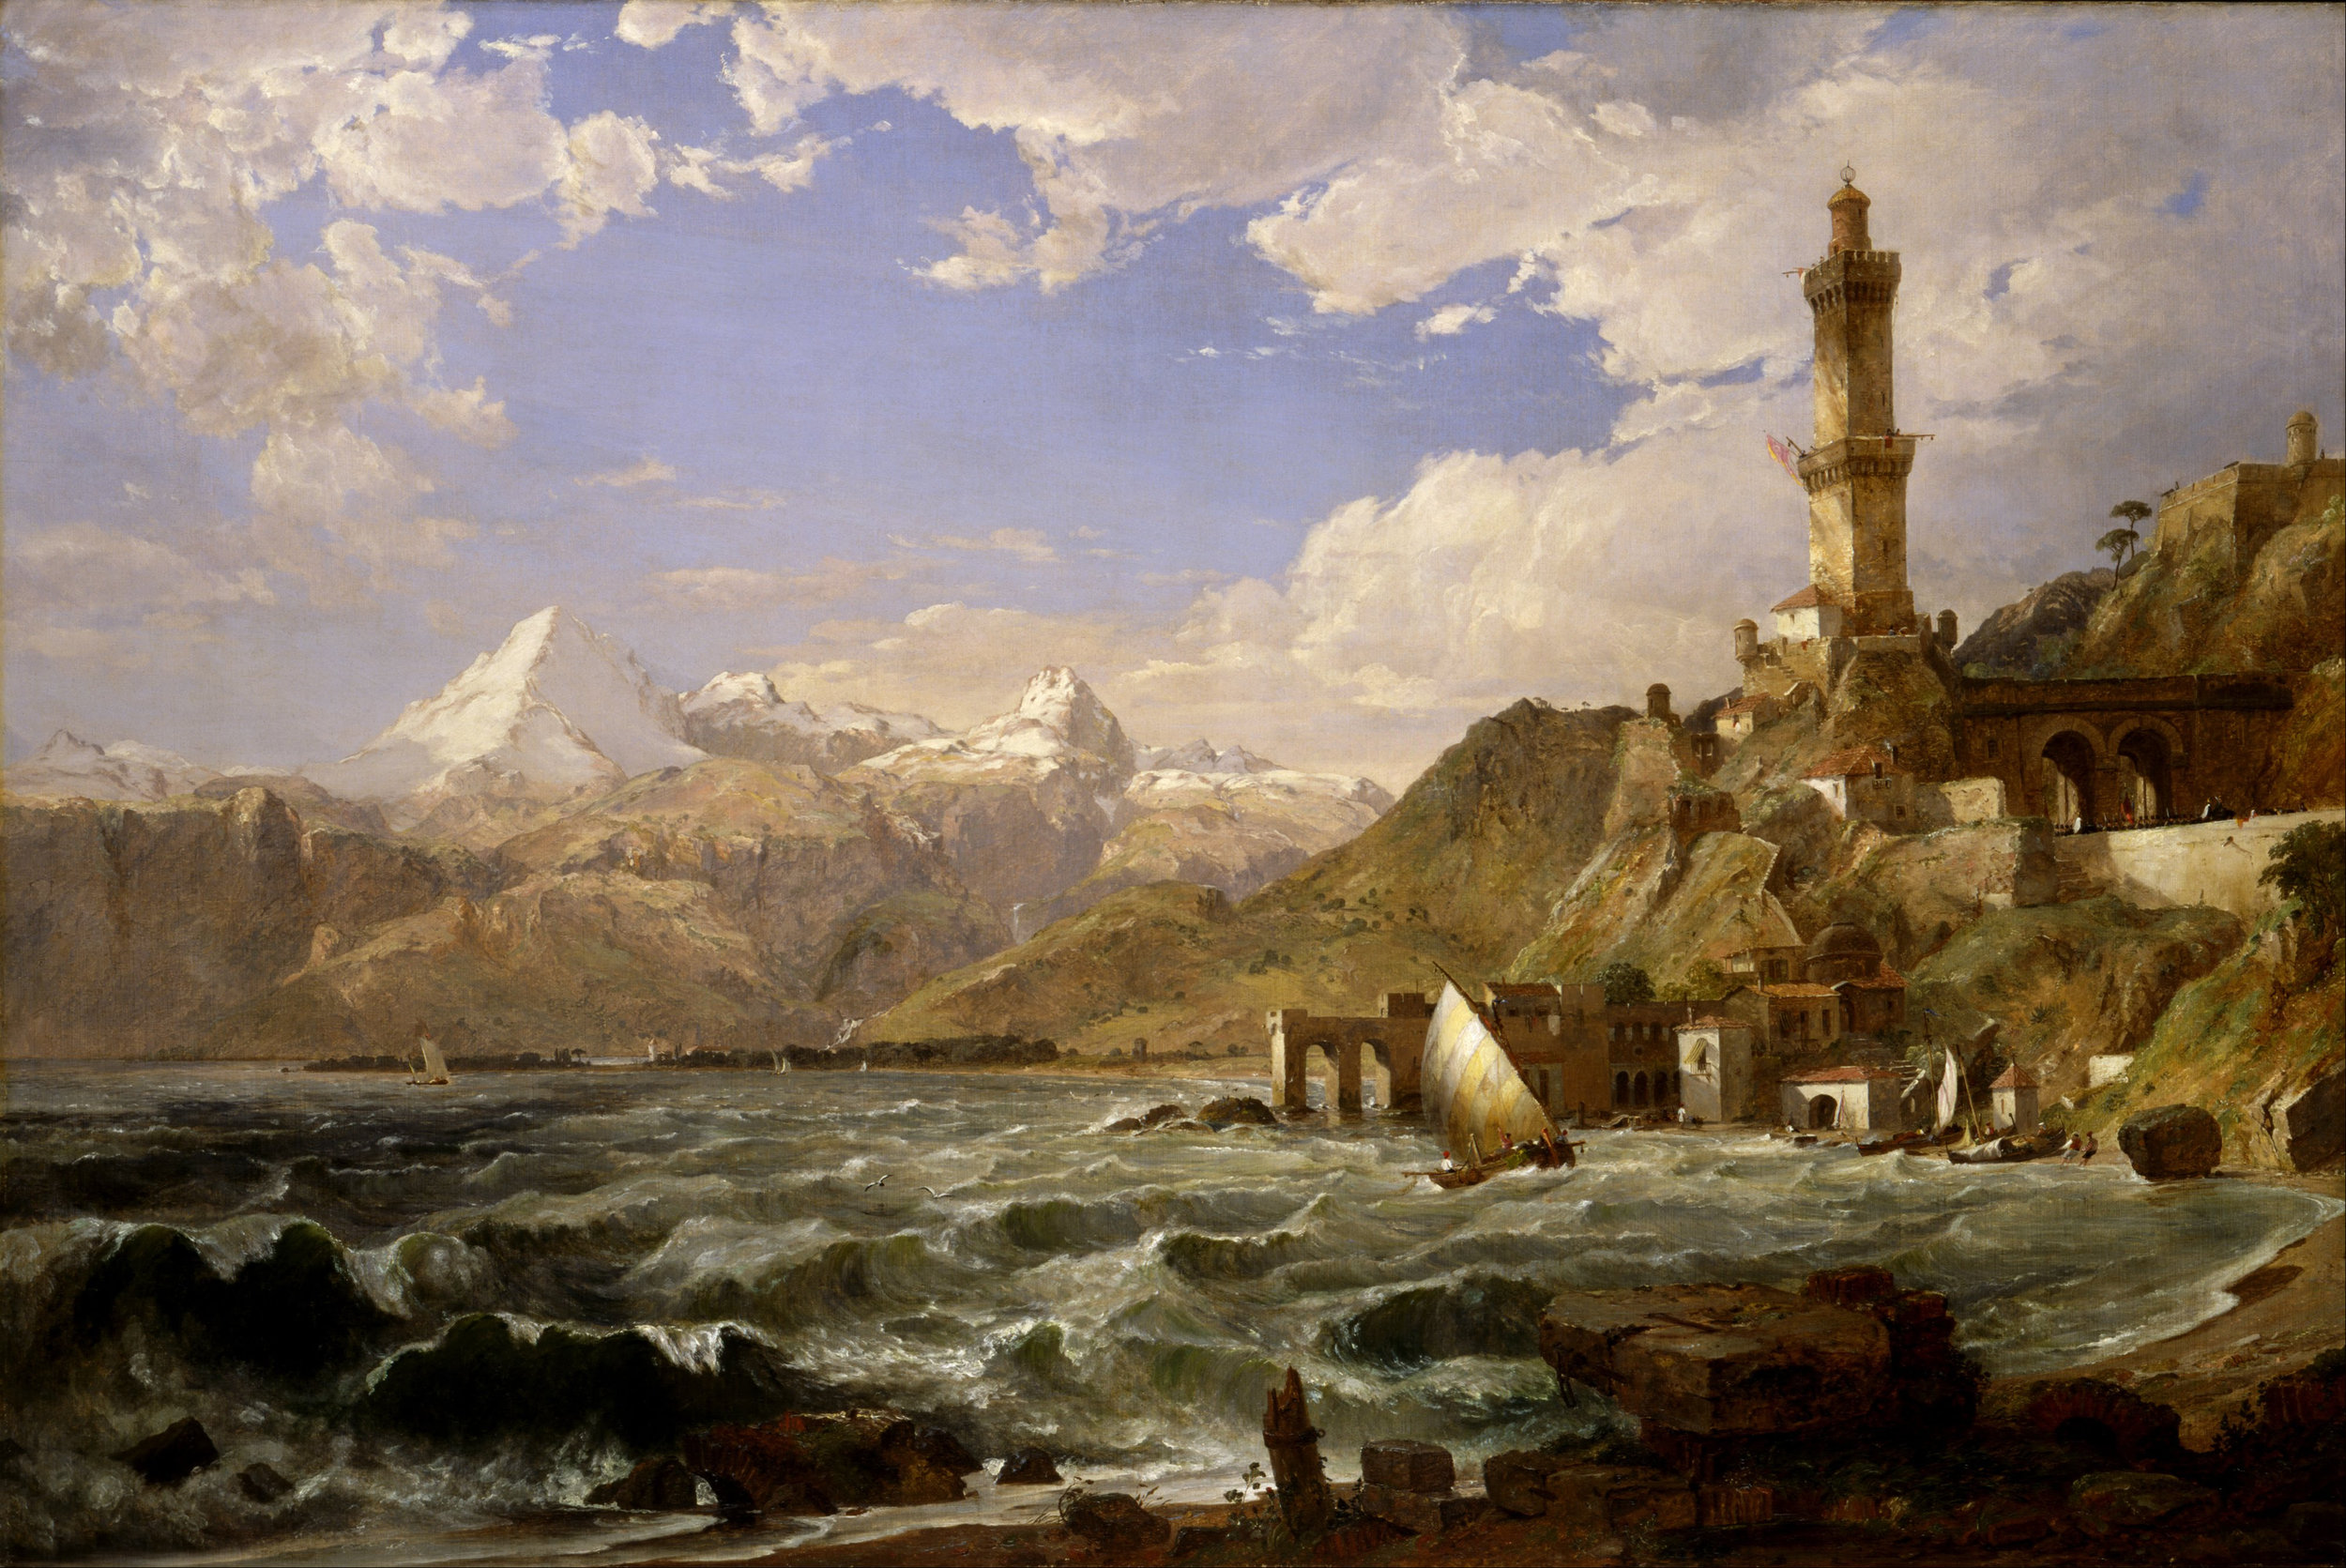 Jasper Francis Cropsey, 'The Coast of Genoa,'1854, Oil on canvas,48x72 inches, Image courtesy of the Smithsonian American Art Museum.